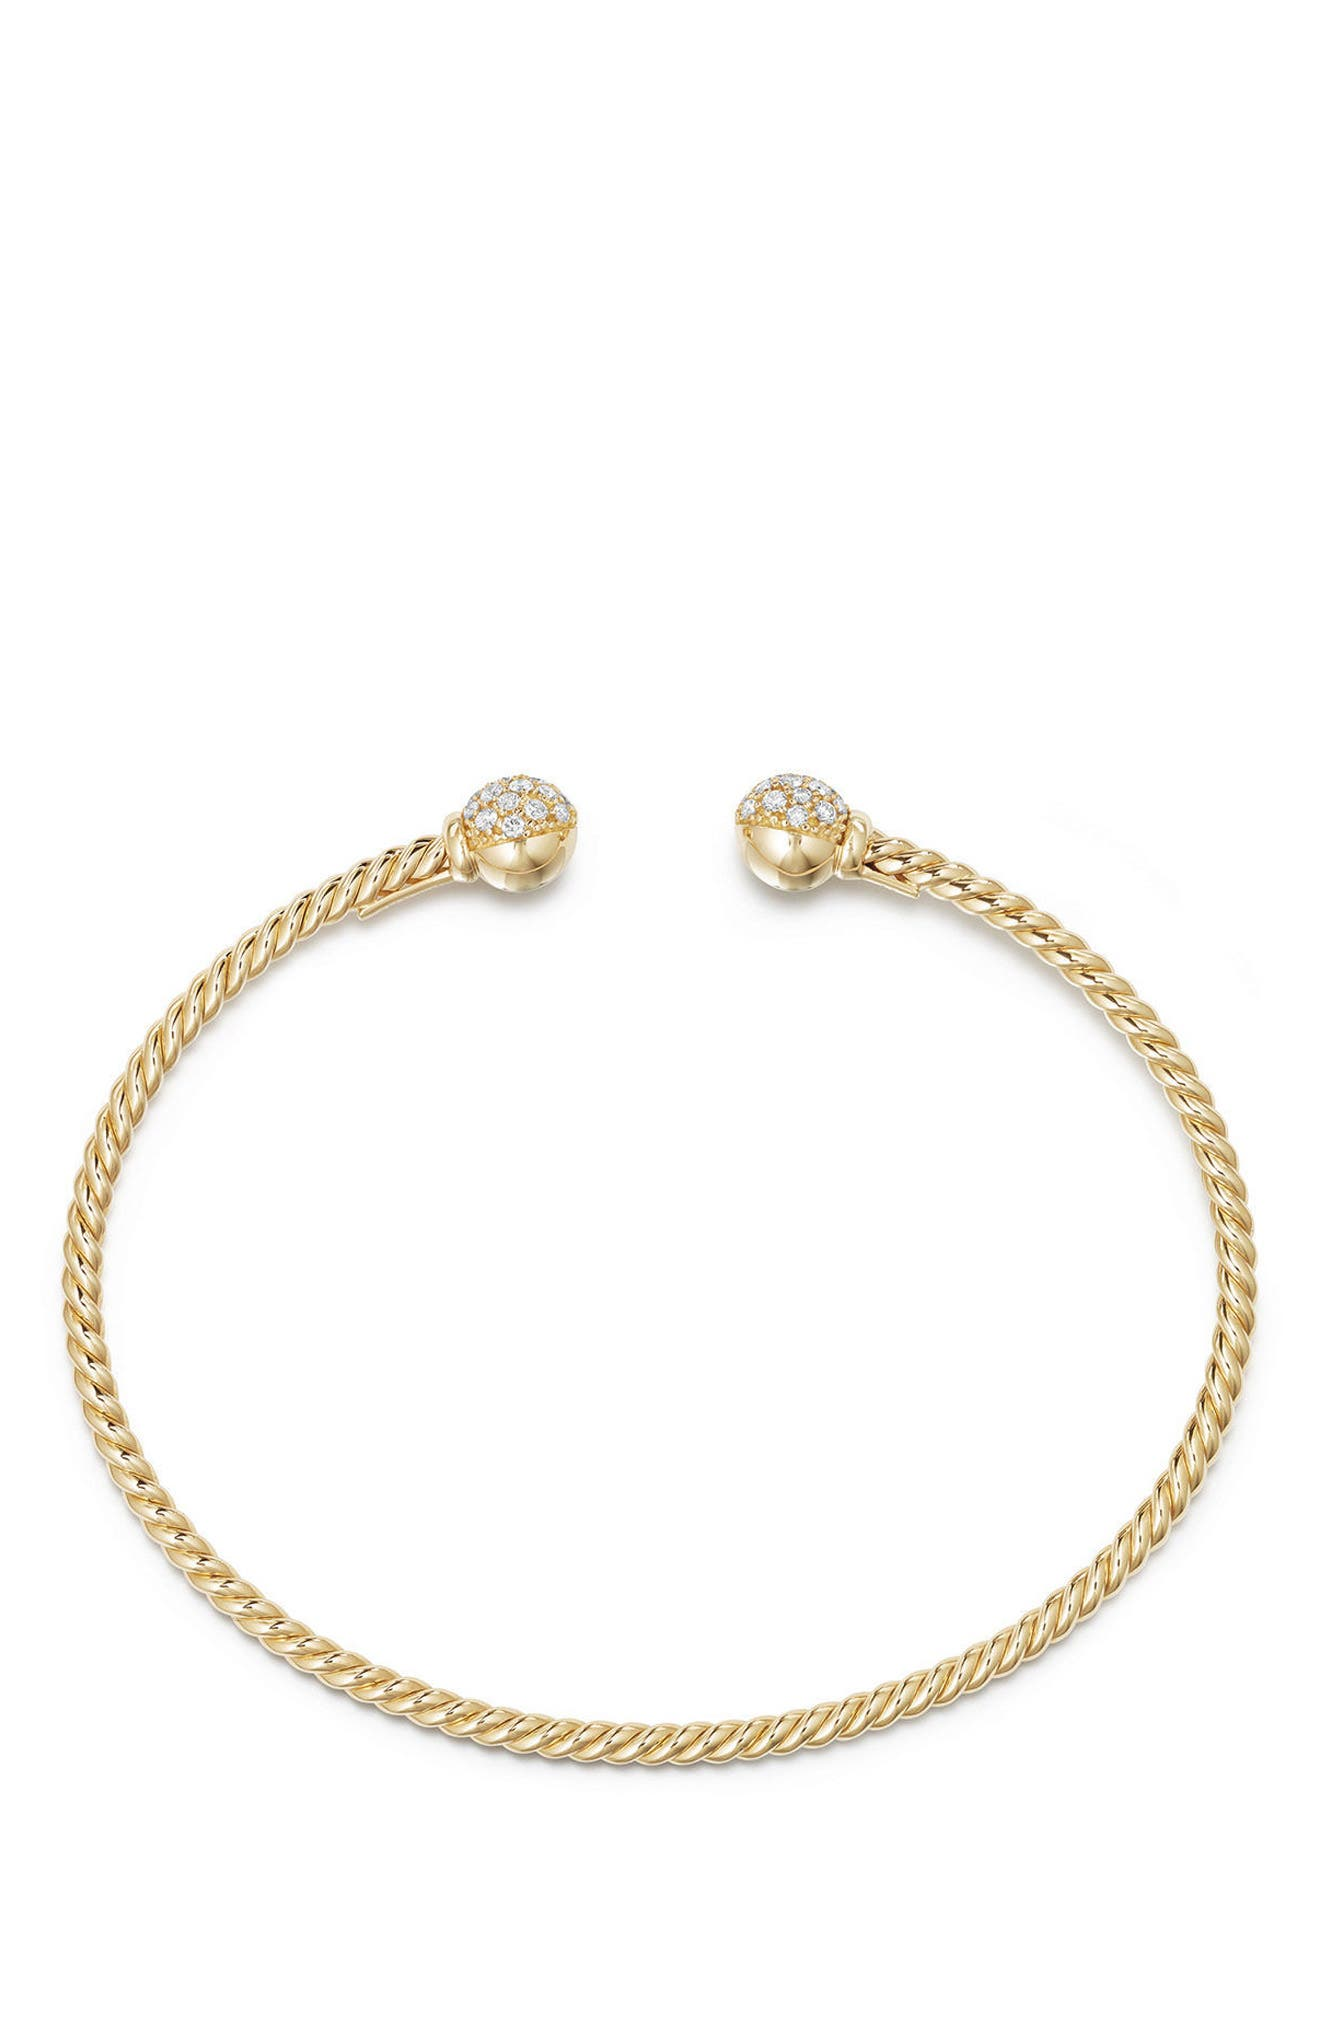 DAVID YURMAN,                             Solari Bead Bracelet with Diamonds in 18K Gold,                             Alternate thumbnail 2, color,                             YELLOW GOLD/ DIAMOND